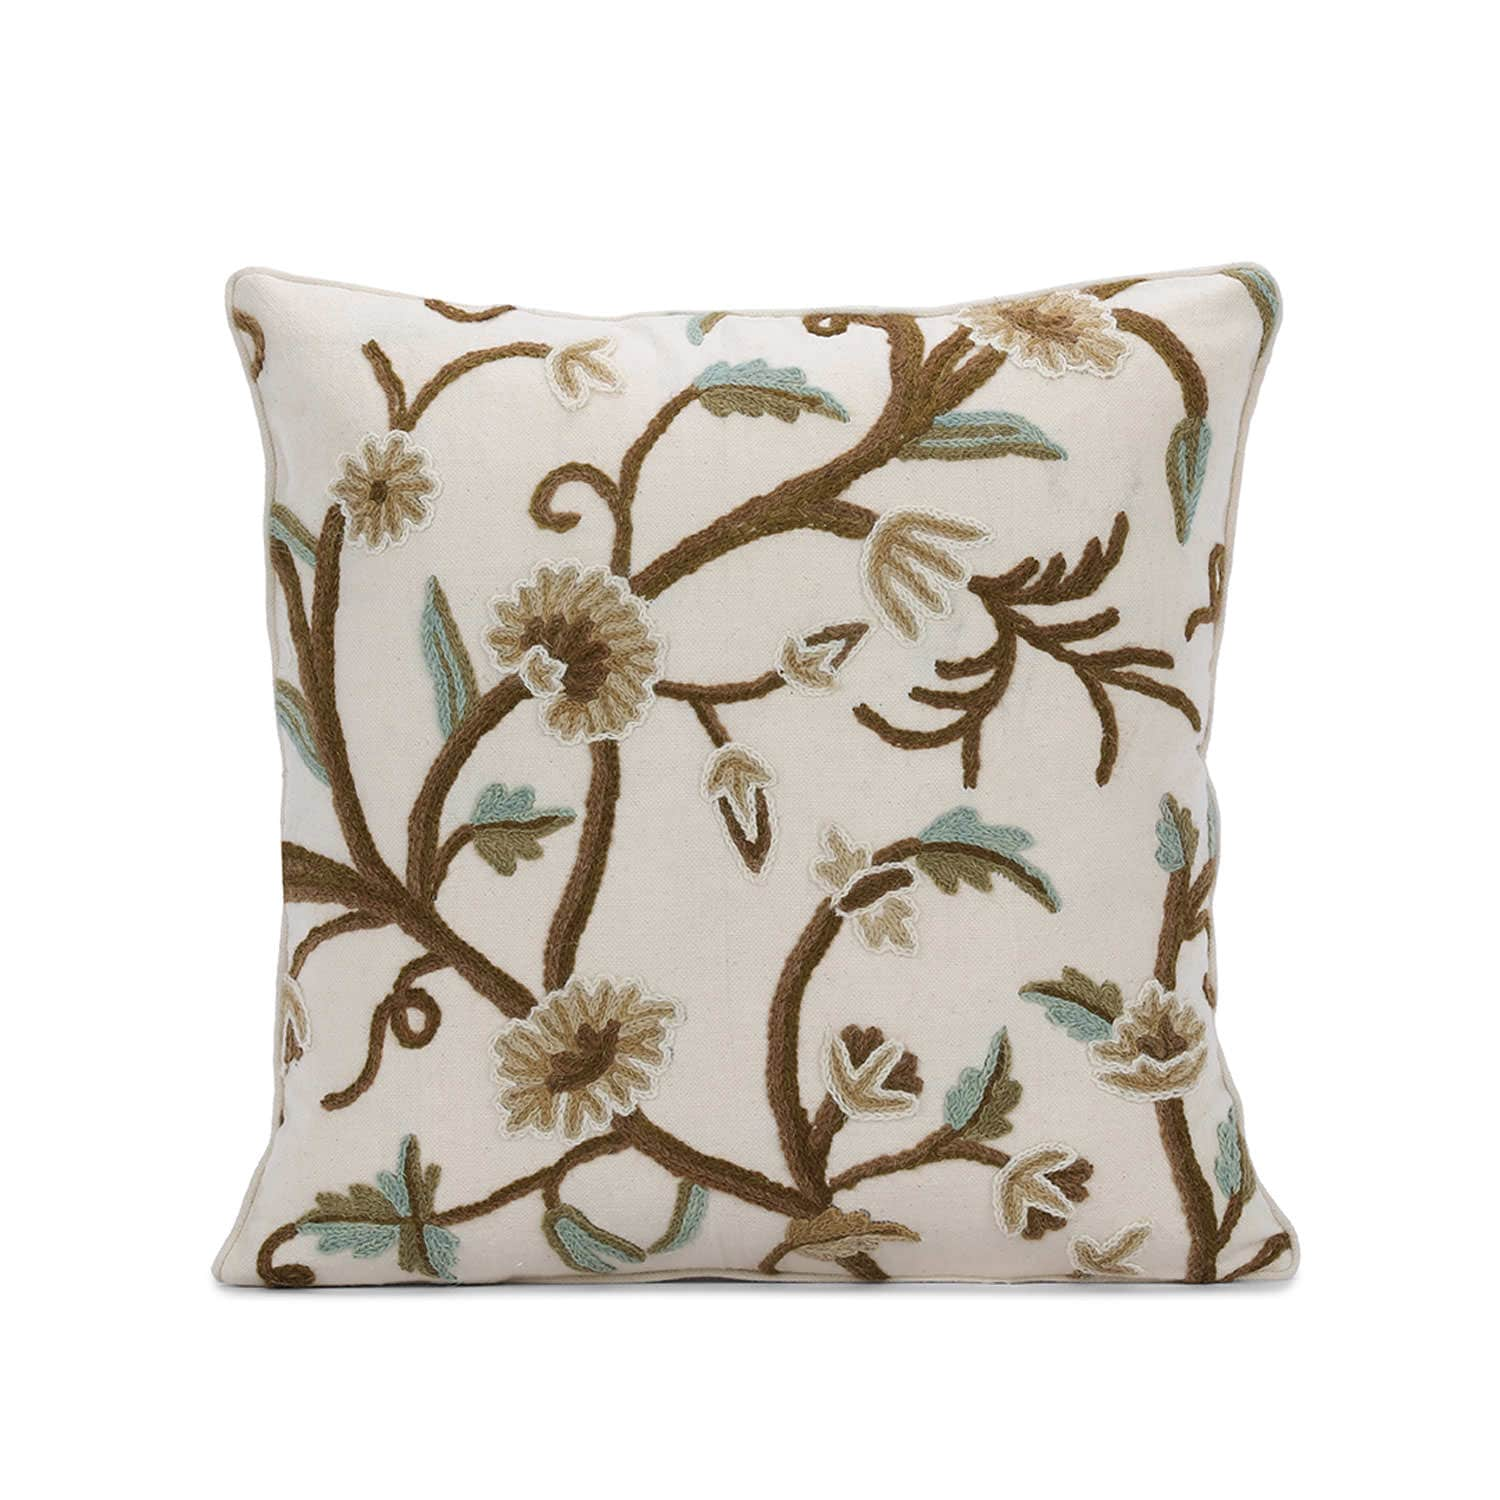 Frances Embroidered Cotton Crewel Cushion Covers - Pair